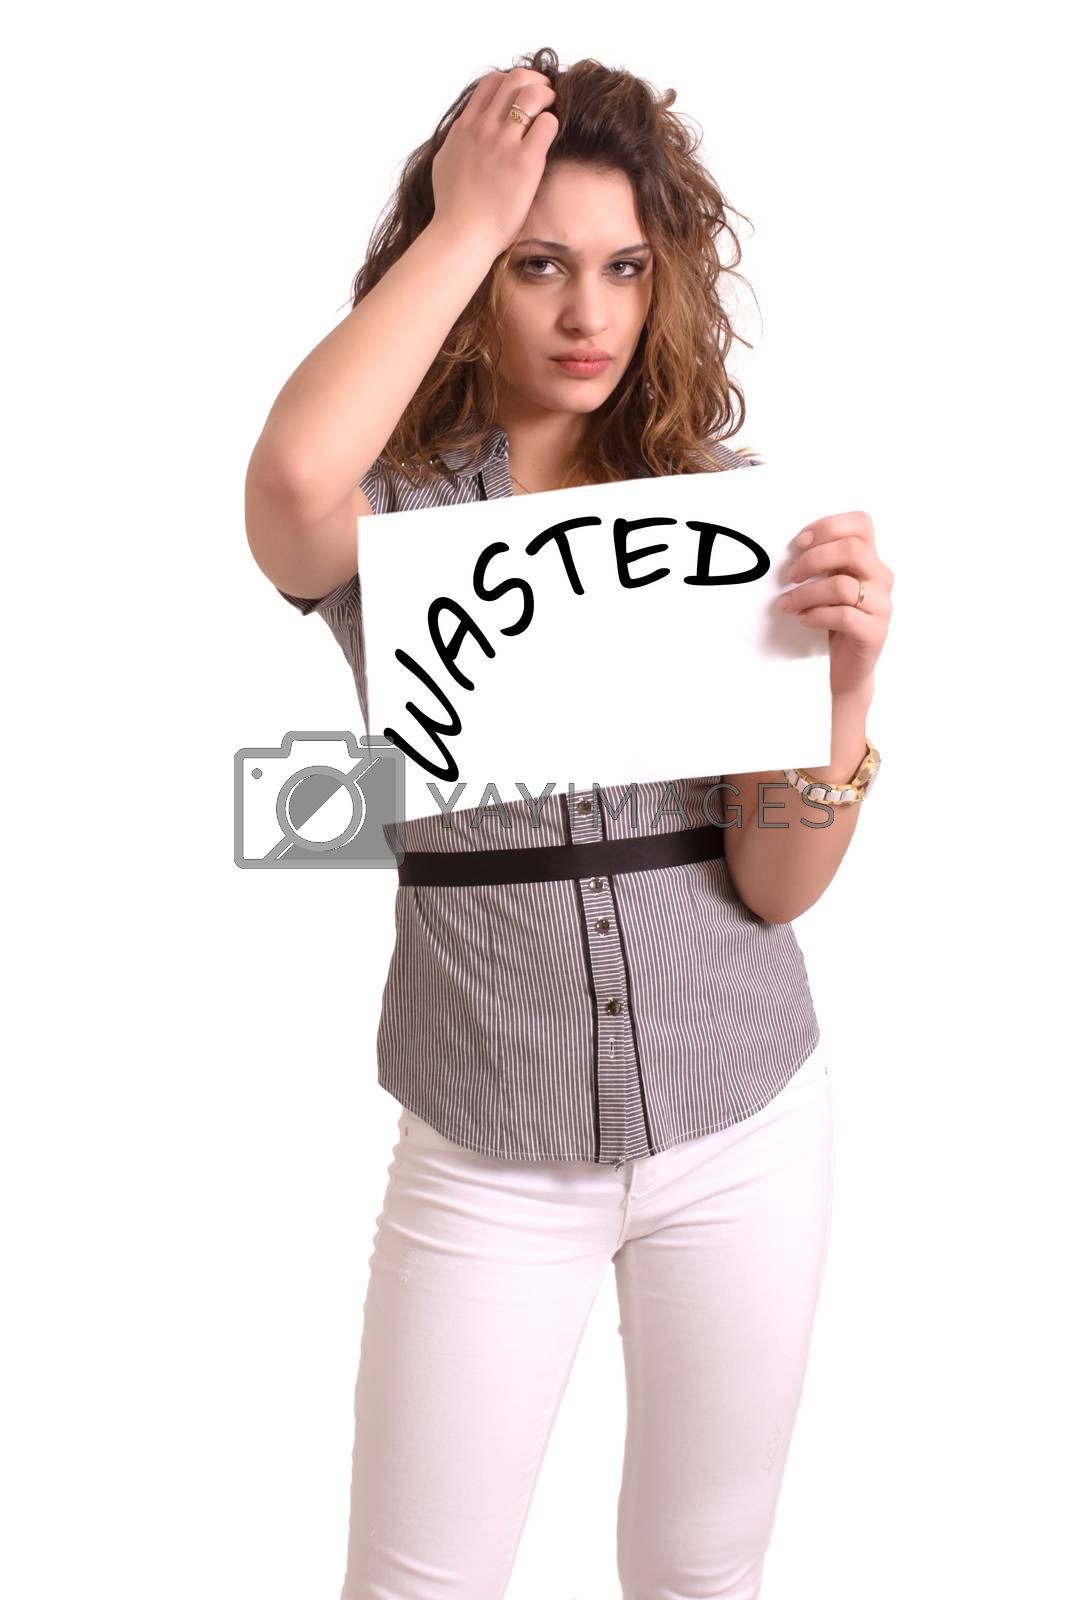 Royalty free image of uncomfortable woman holding paper with Wasted text by vepar5